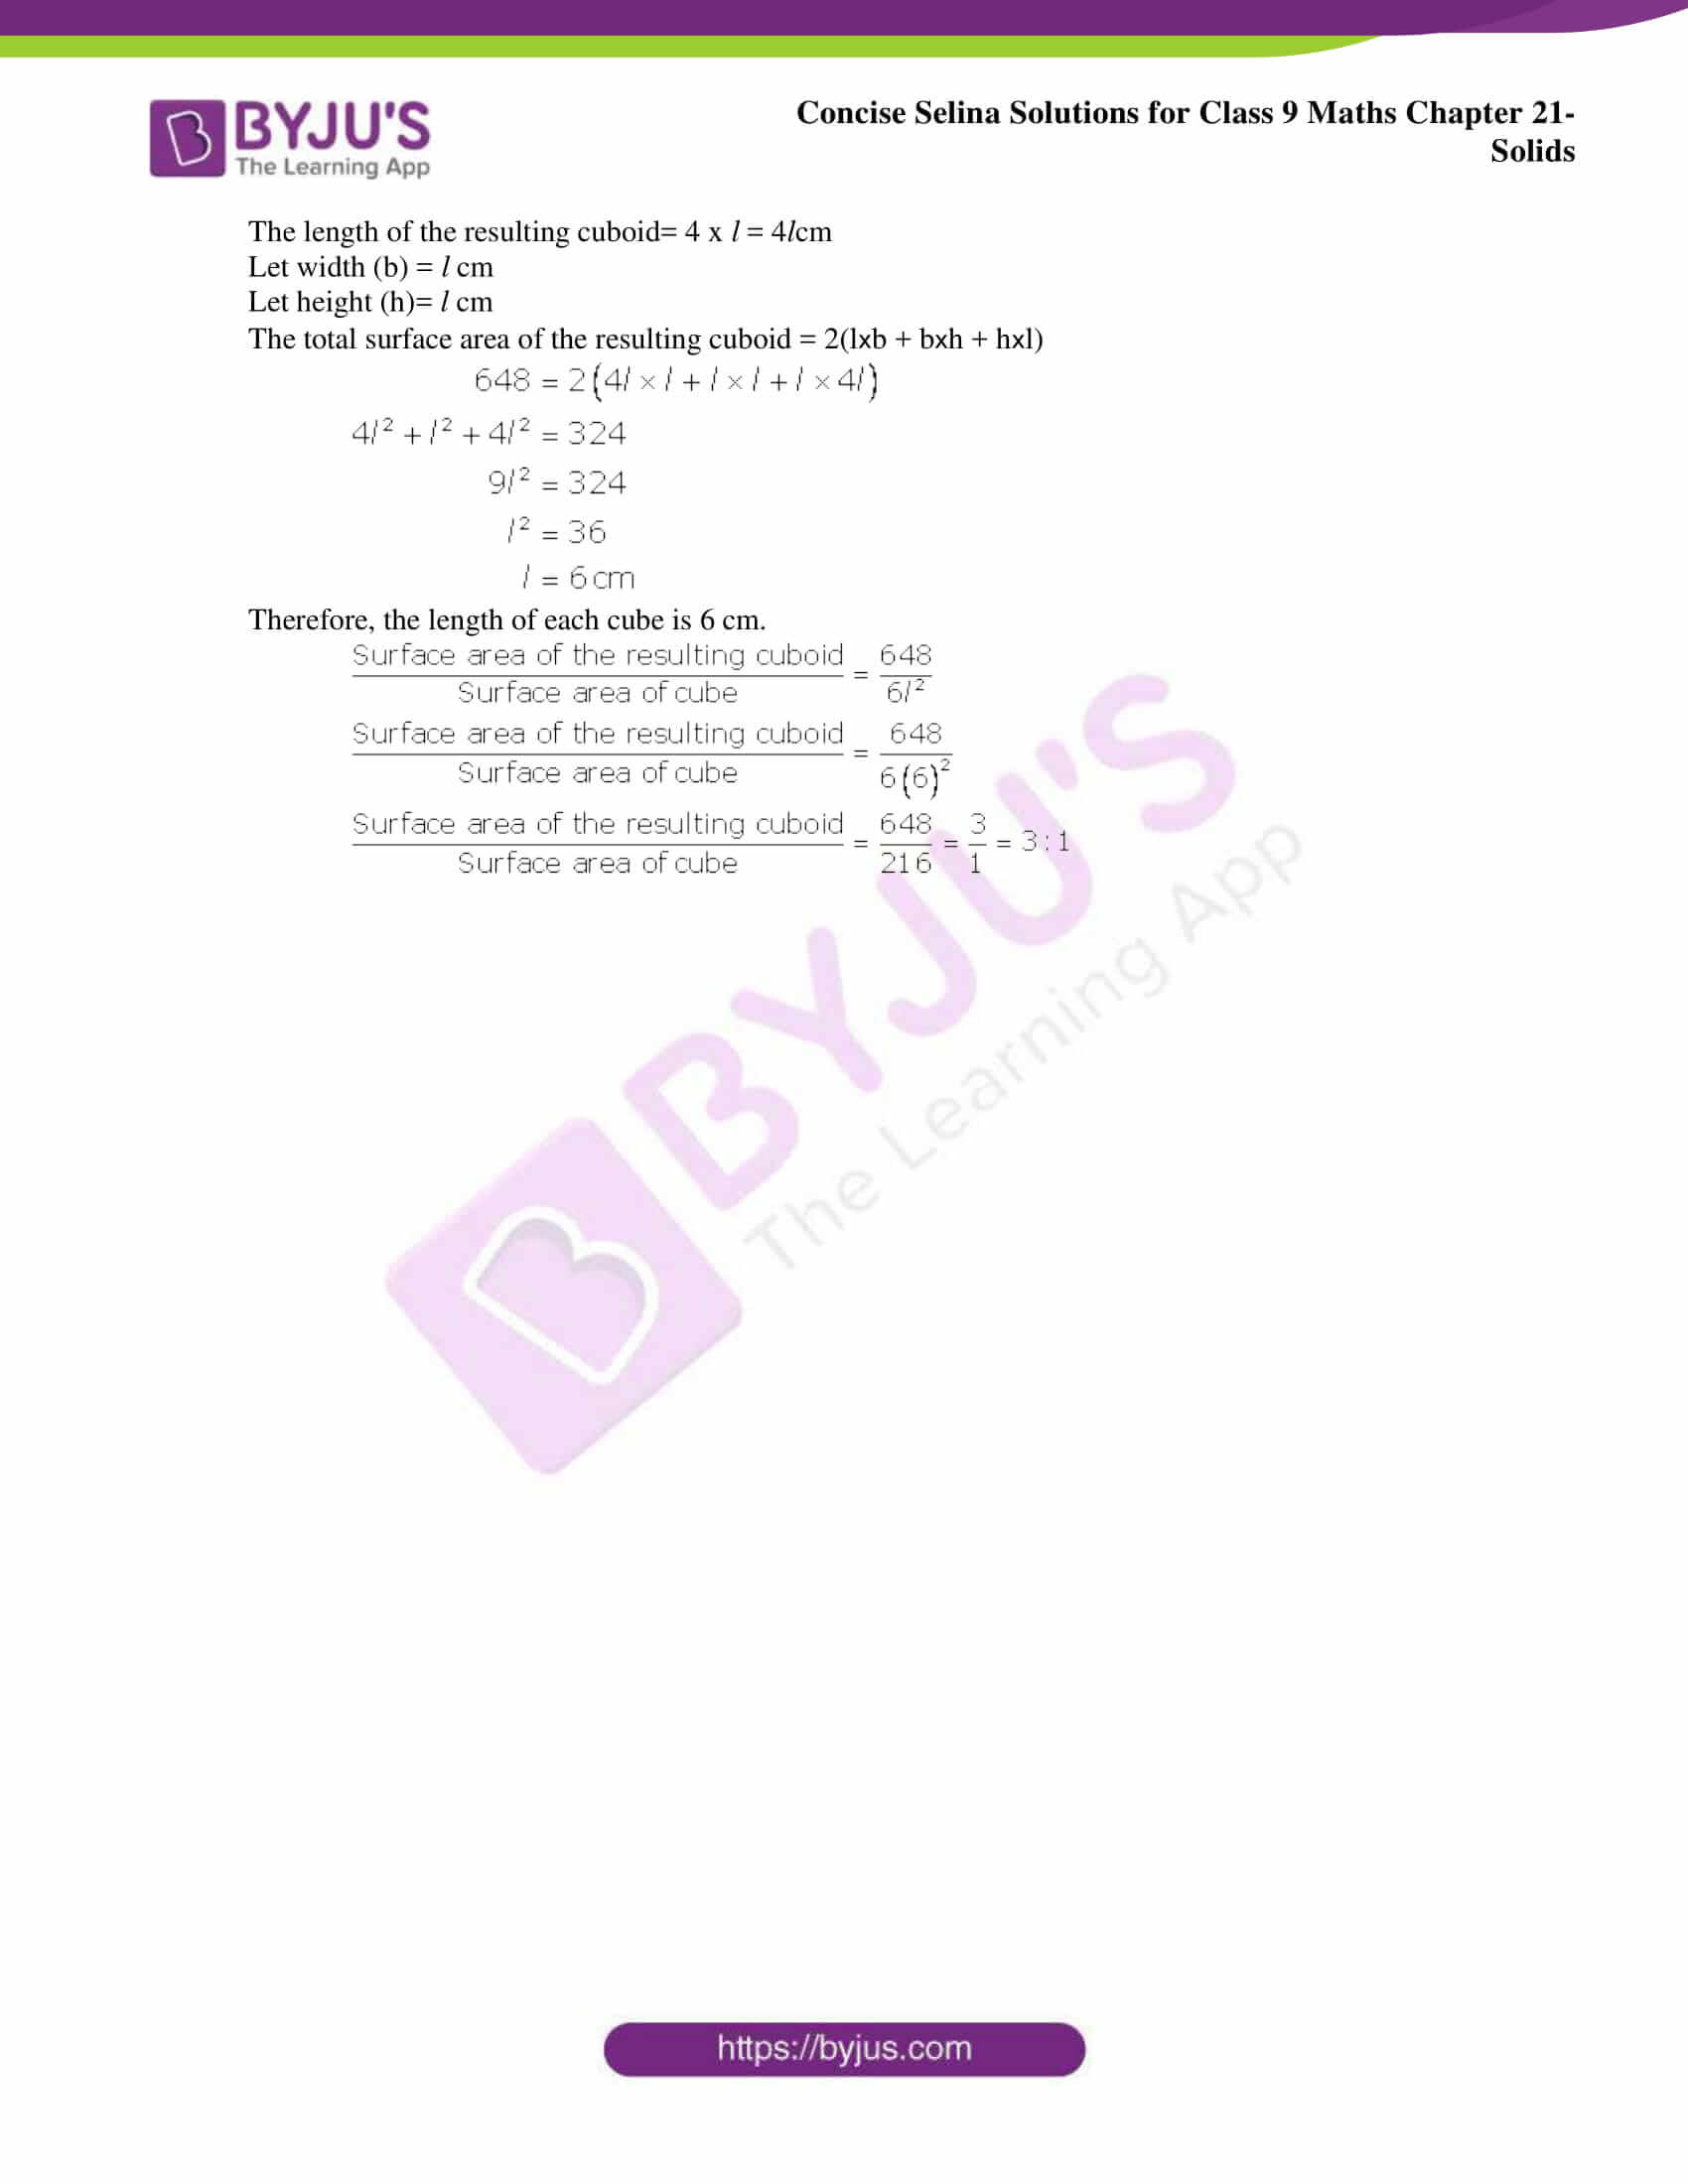 Concise Selina Solutions Class 9 Maths Chapter 21 Solids part 06